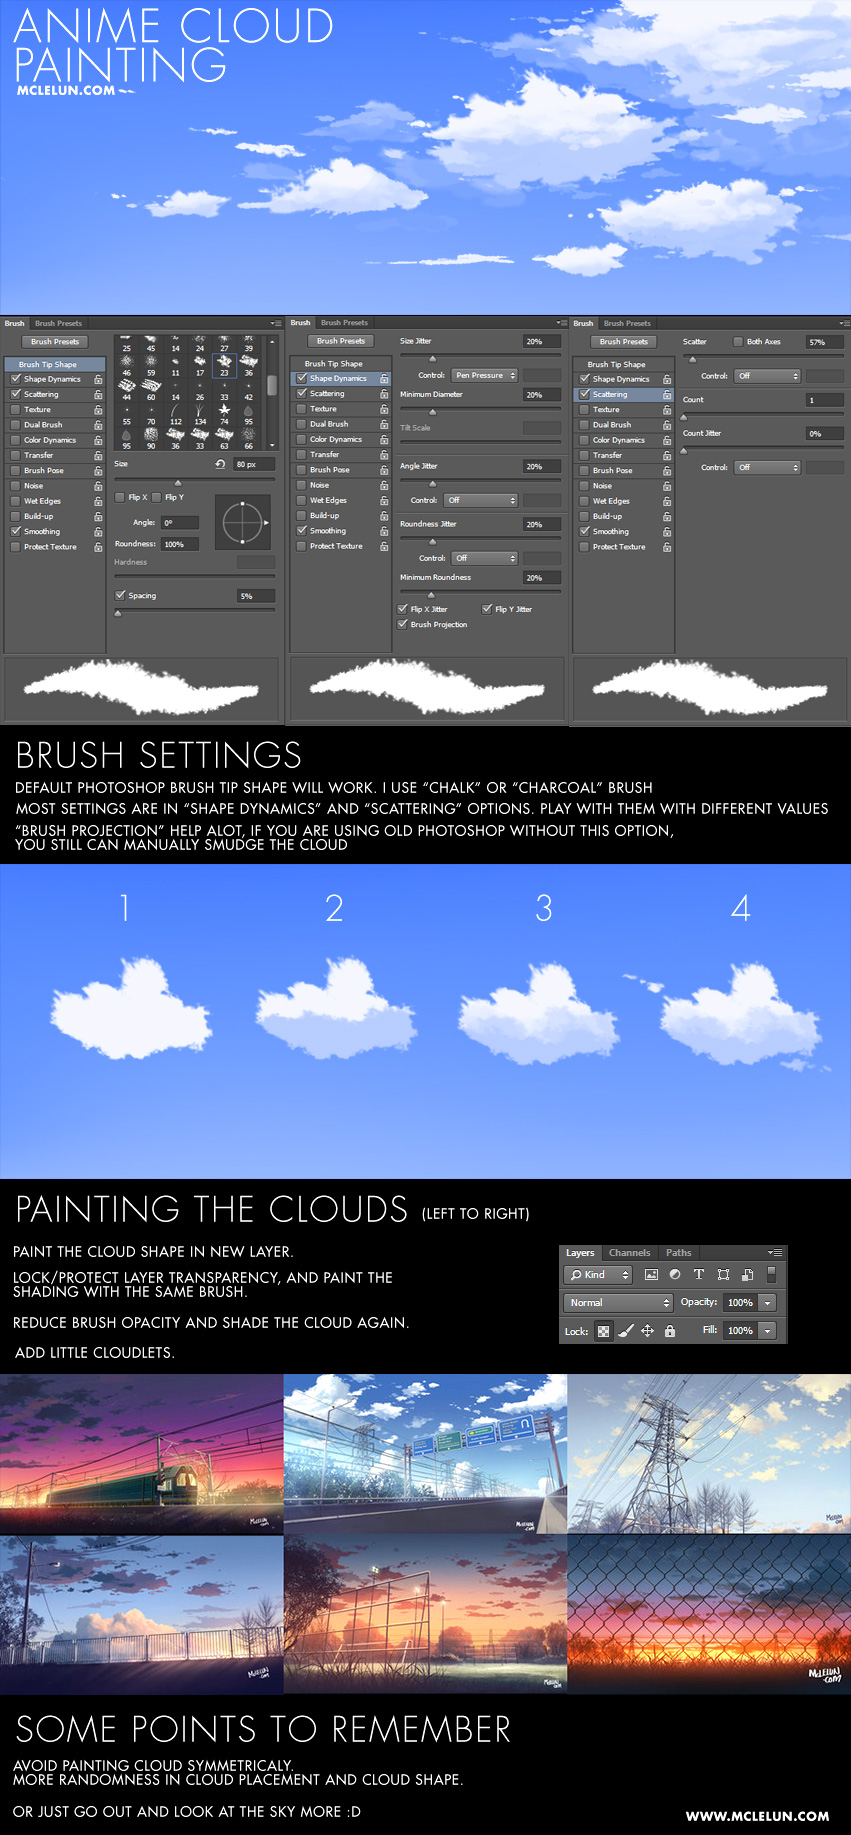 Anime Cloud Painting by mclelun